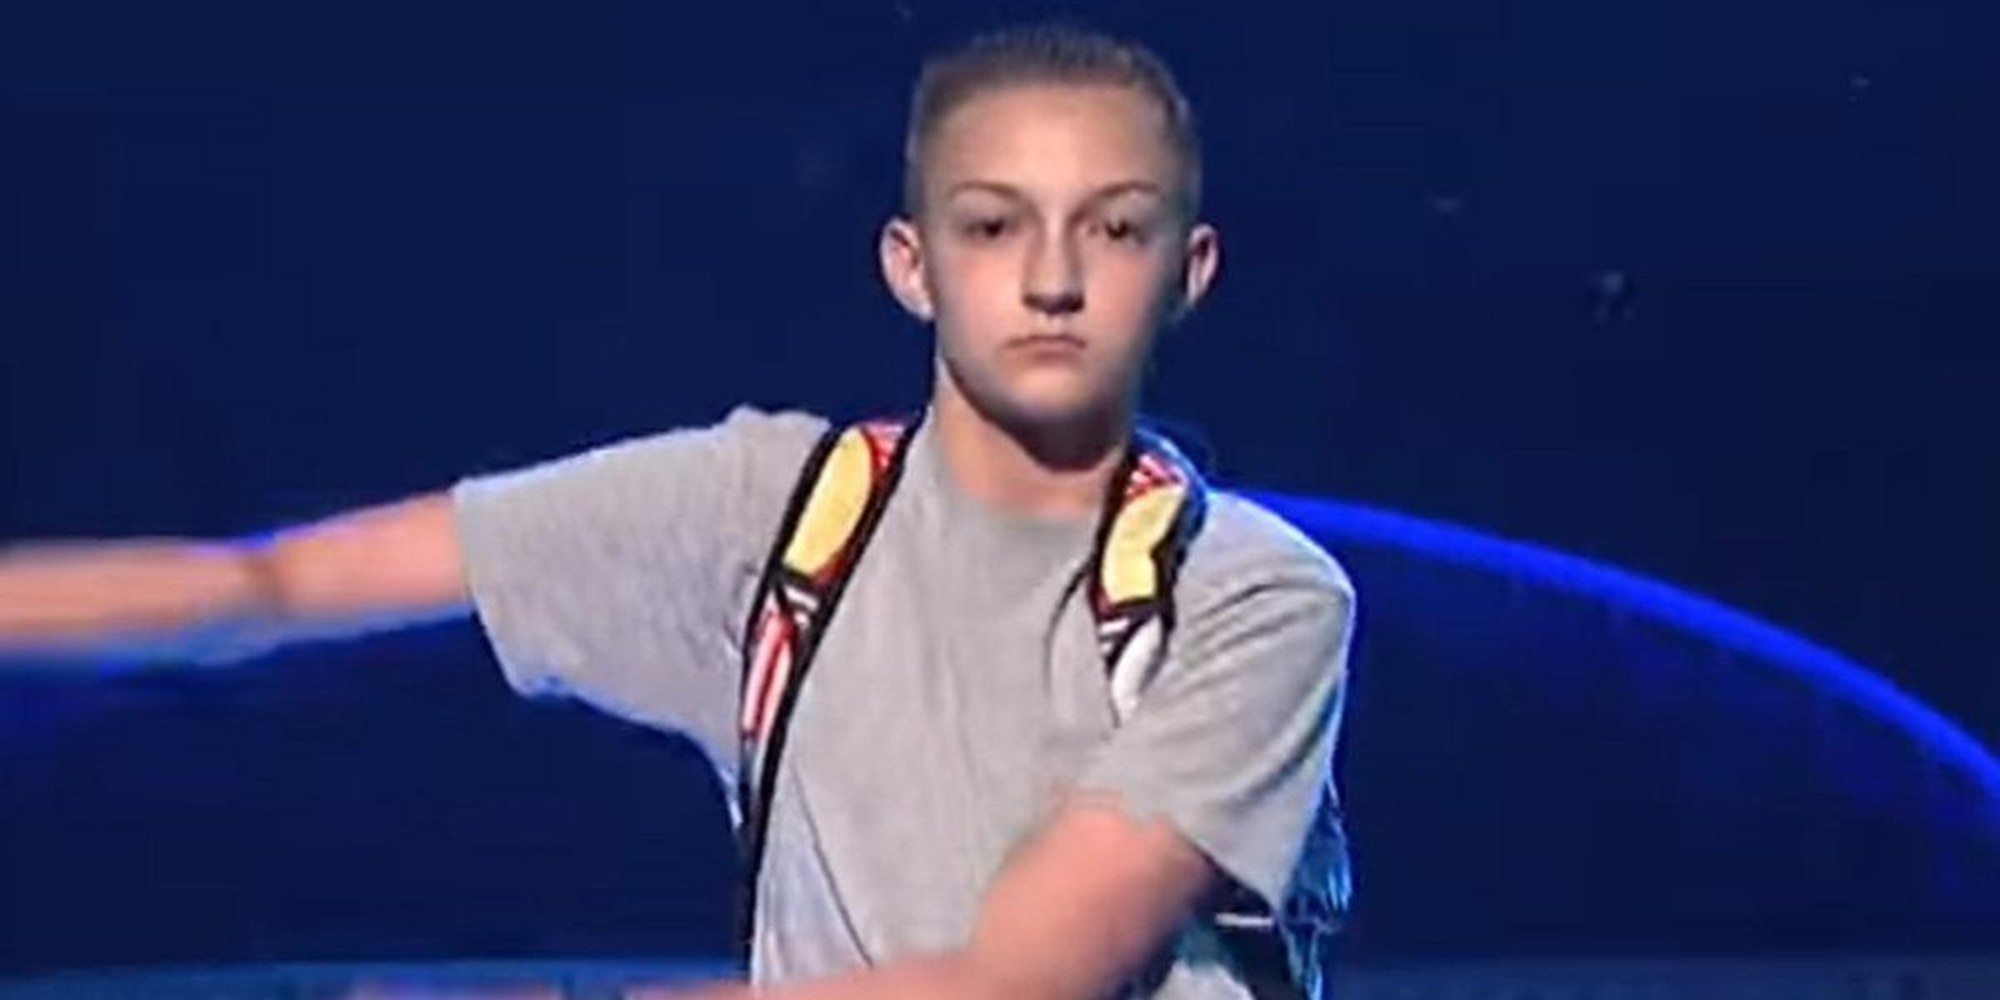 Russell Horning aka Backpack Kid is Suing Fortnite over Floss Dance Emote